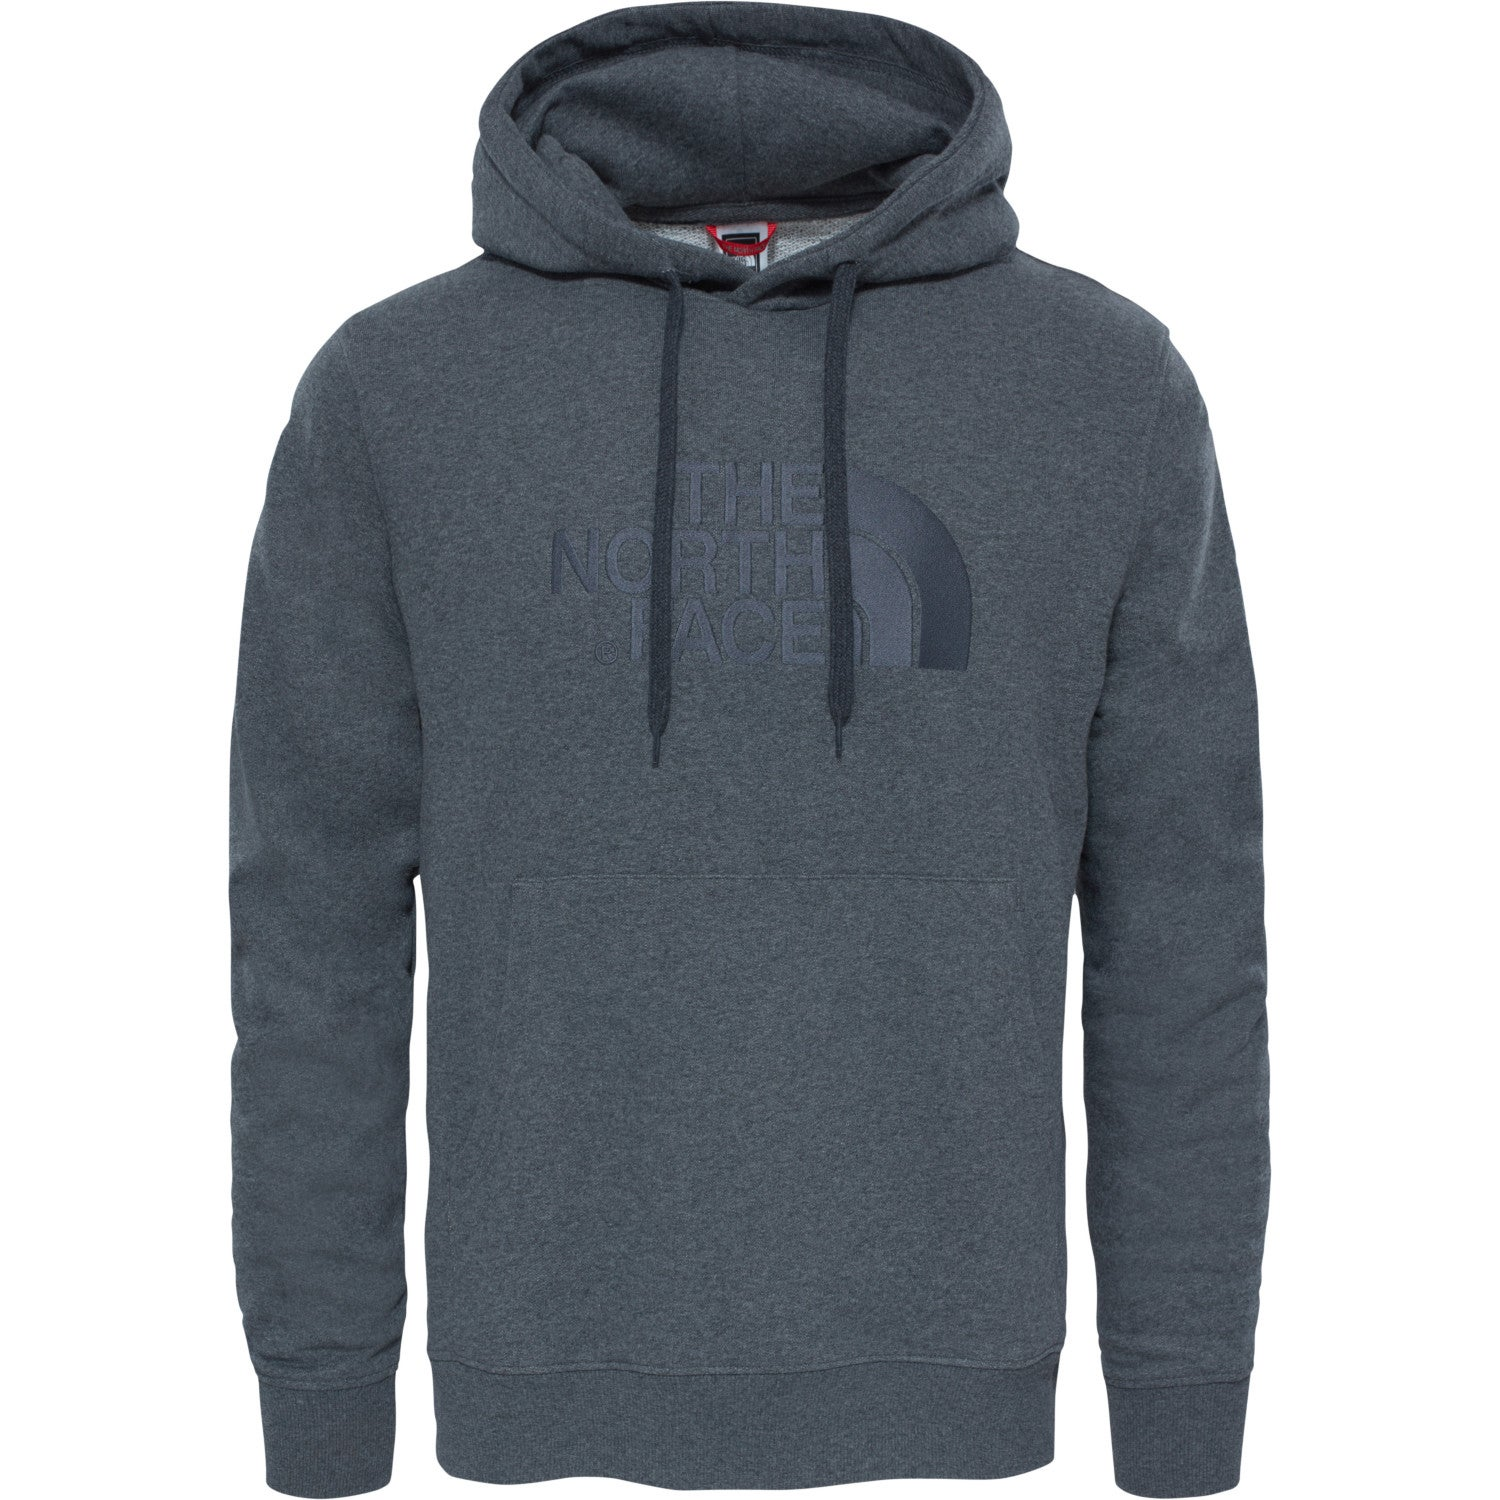 6a9f78ded Details about The North Face Drew Peak Light Hoody Pullover - Tnf Medium  Grey Heather